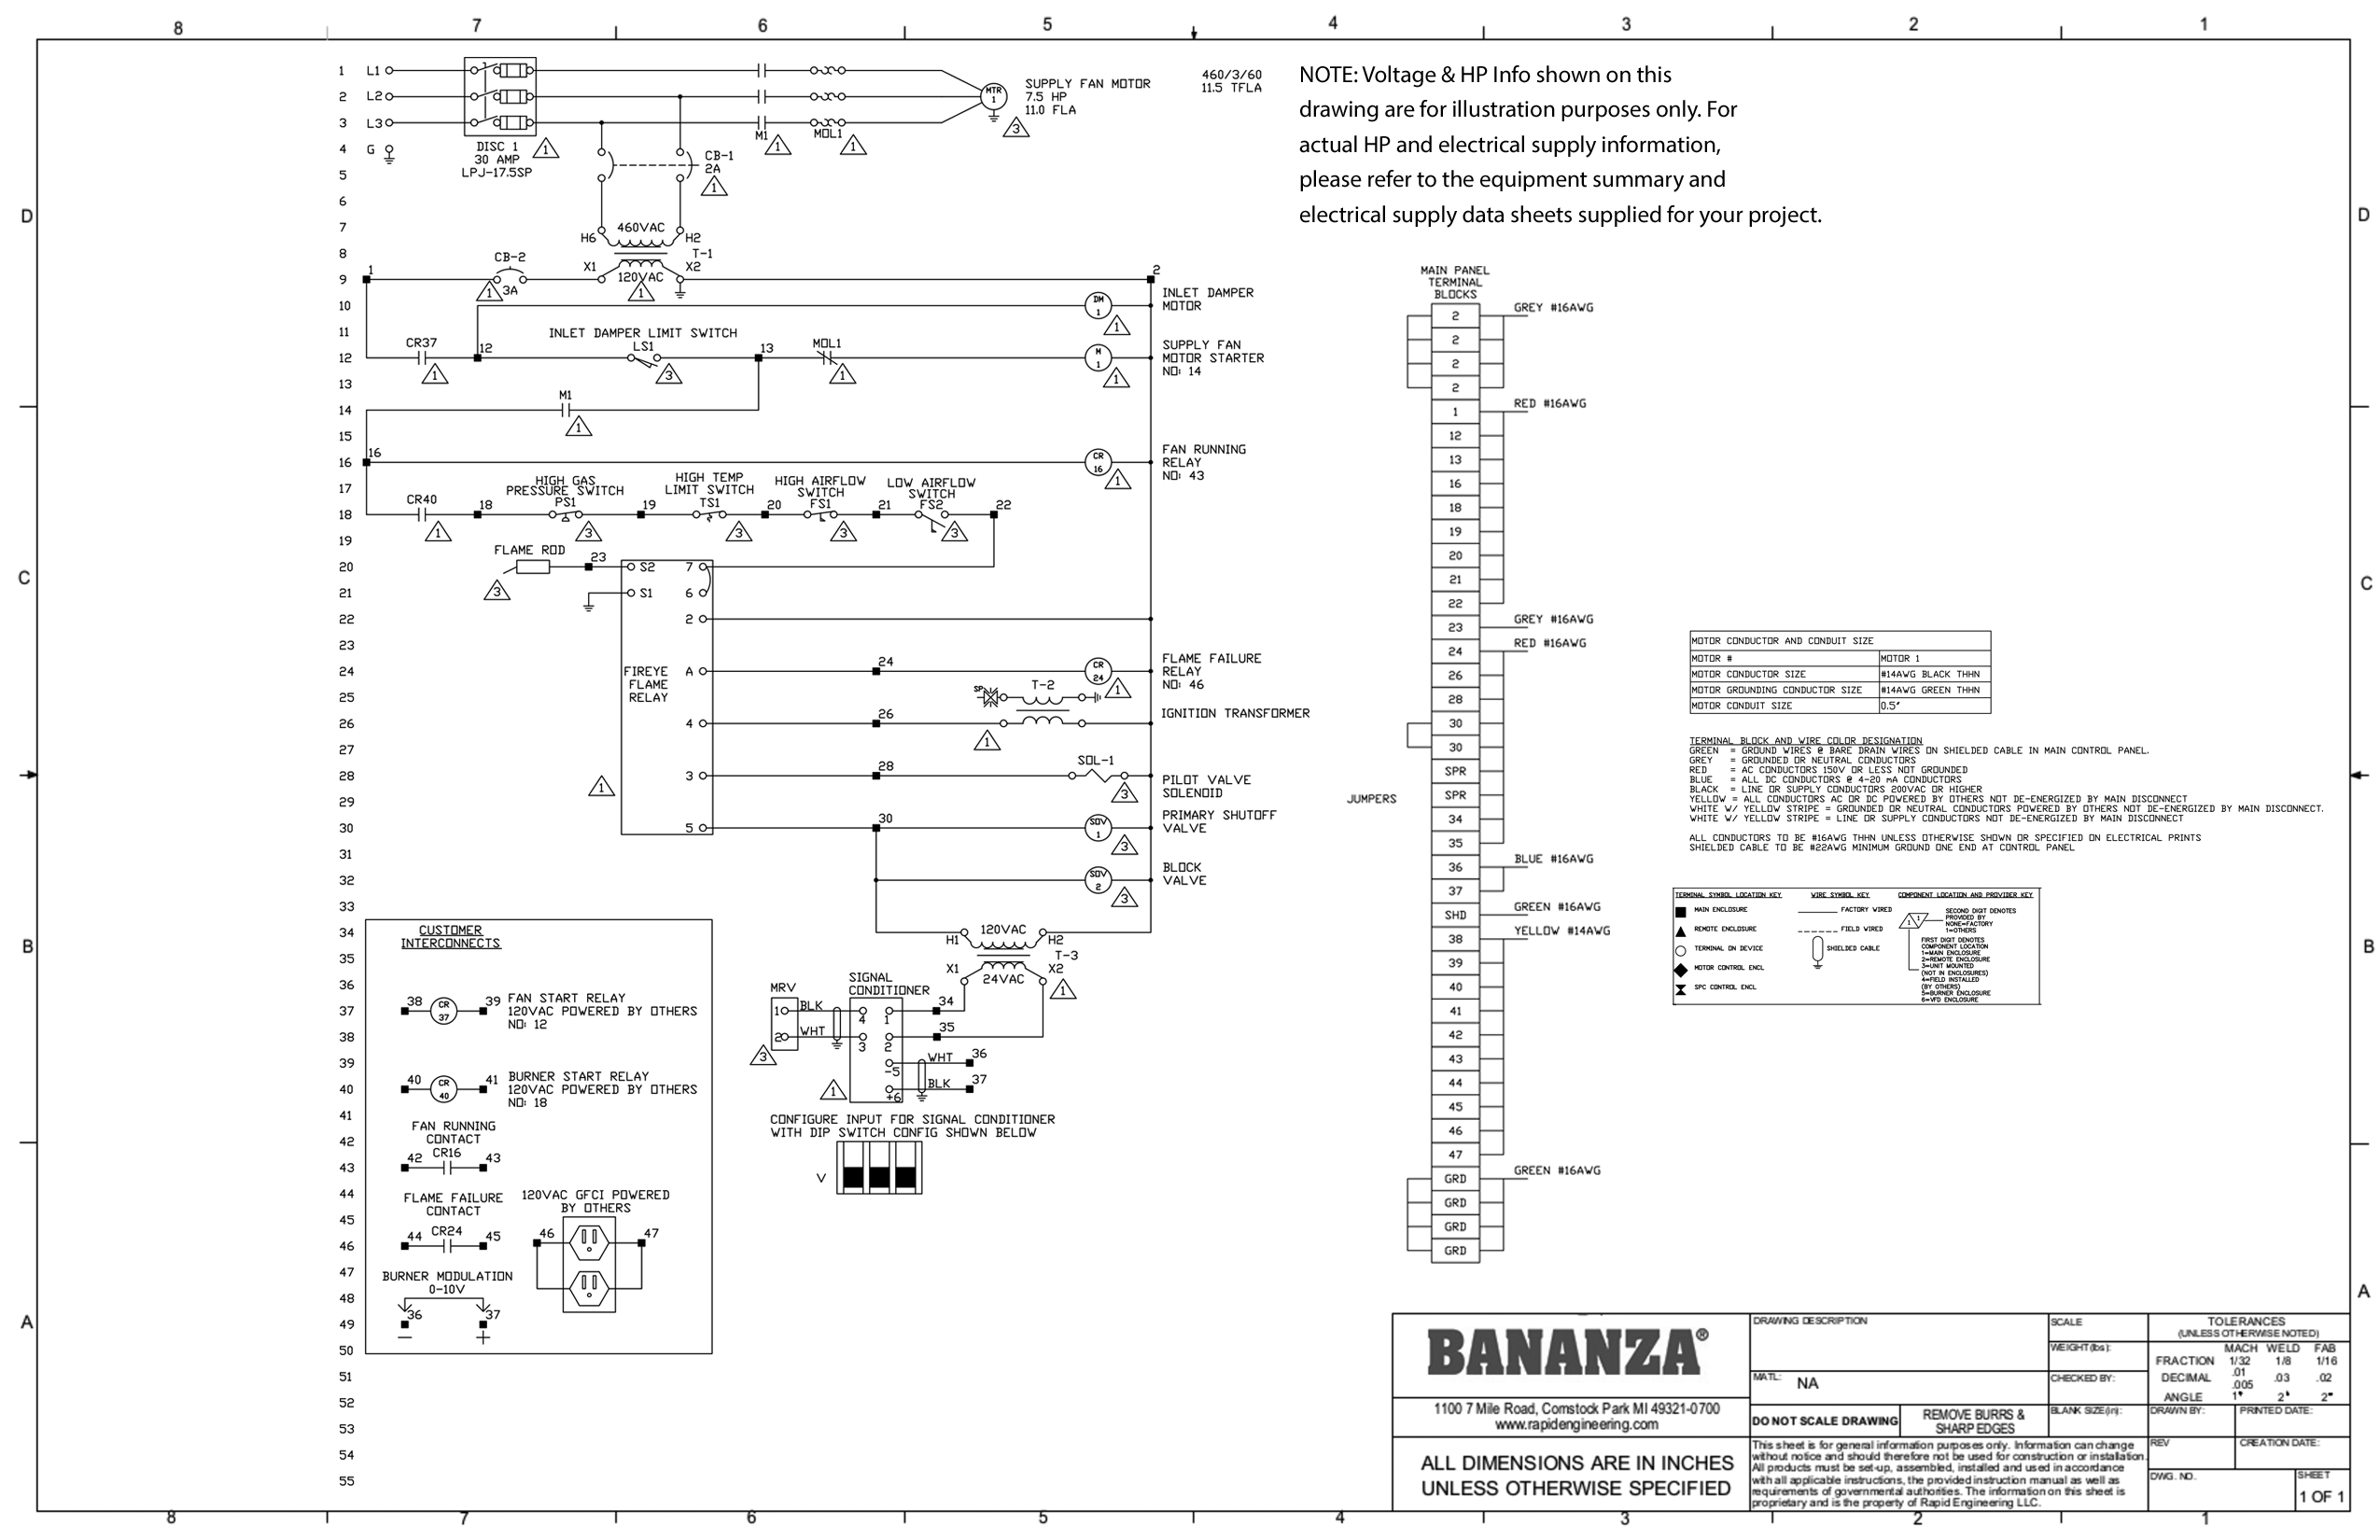 Direct Fired Submittal Drawings From Bananza Prs Wiring Schematic Manifold Diagrams